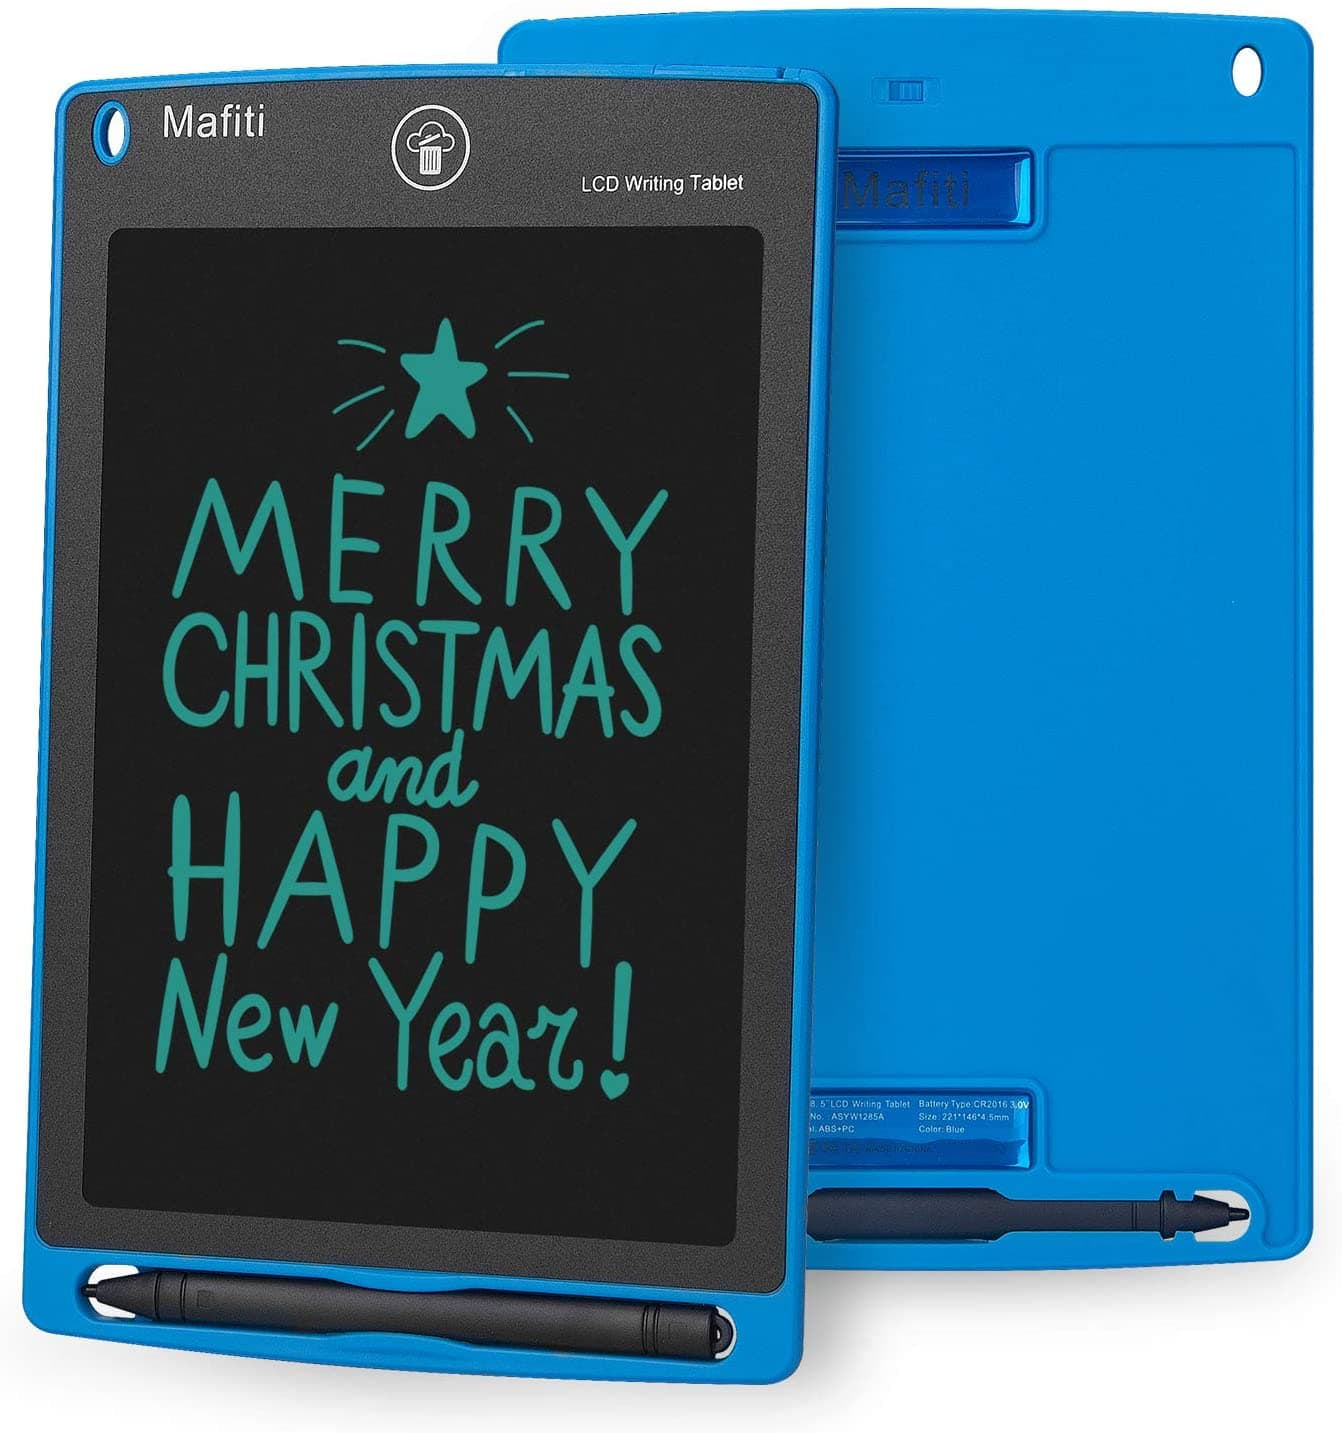 $5.84 AC! 8.5 inch portable LCD Writing Tablet for Kids, Notes, To-Dos, Doodle Board (Blue Only)